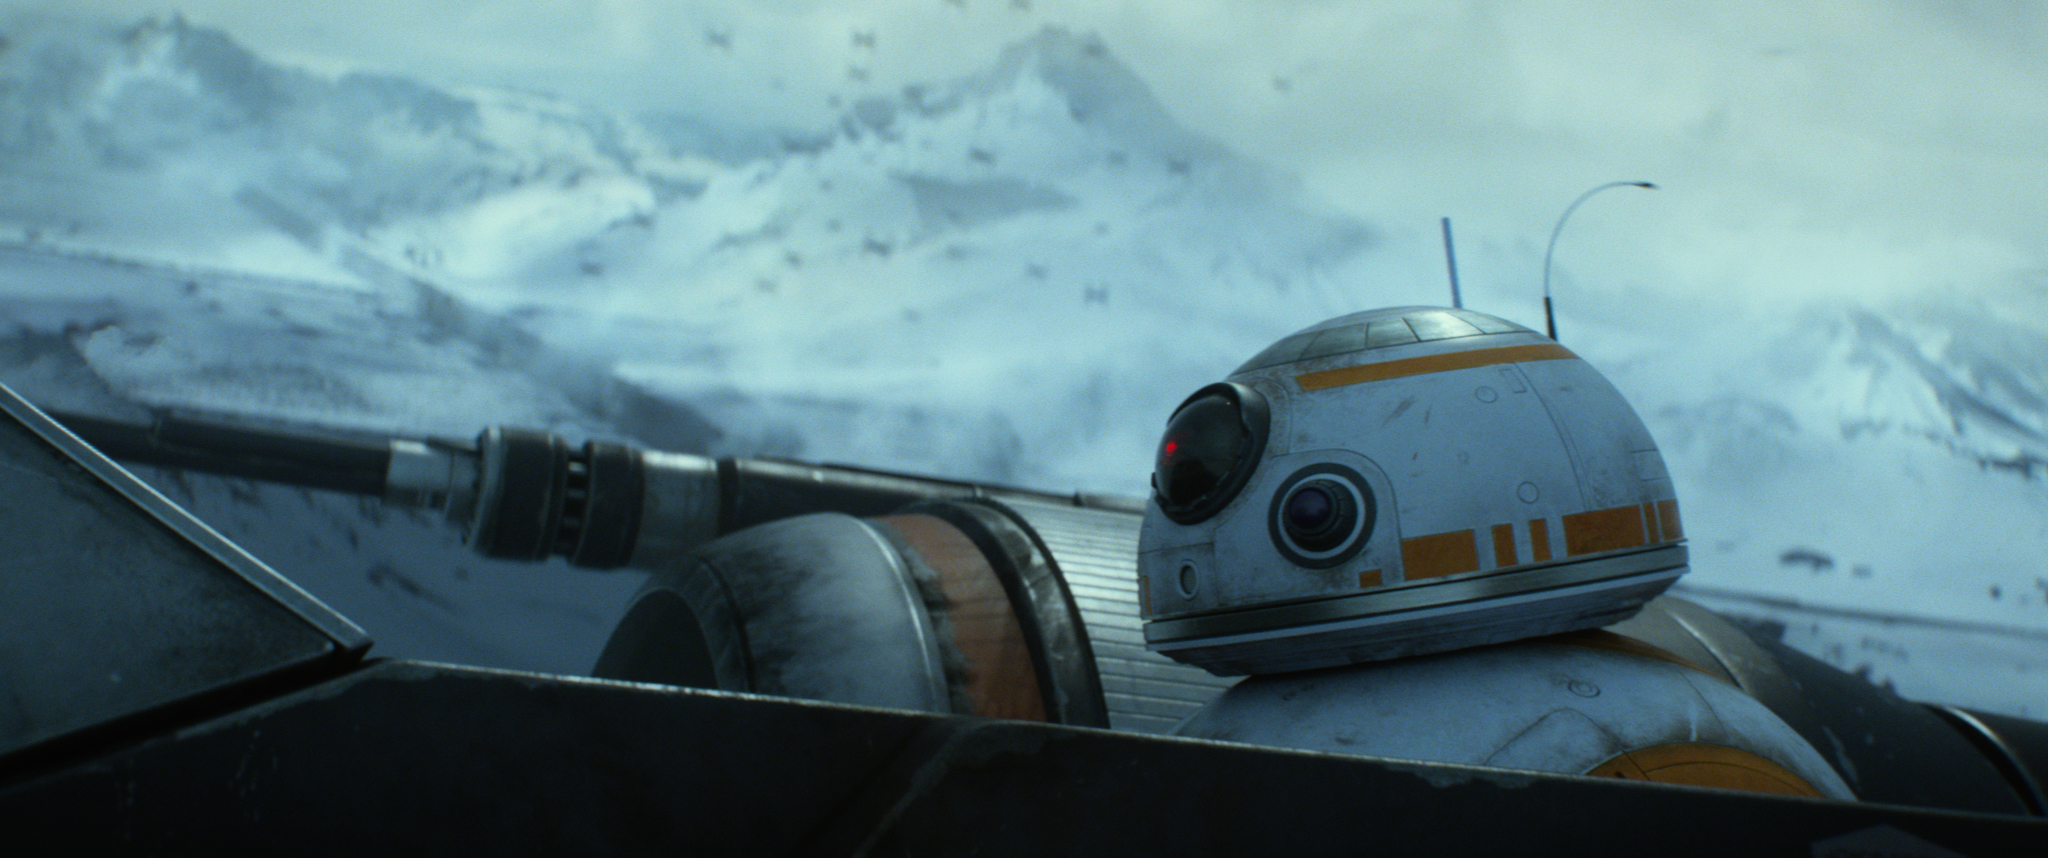 grab a star wars: the force awakens wallpaper with these new high